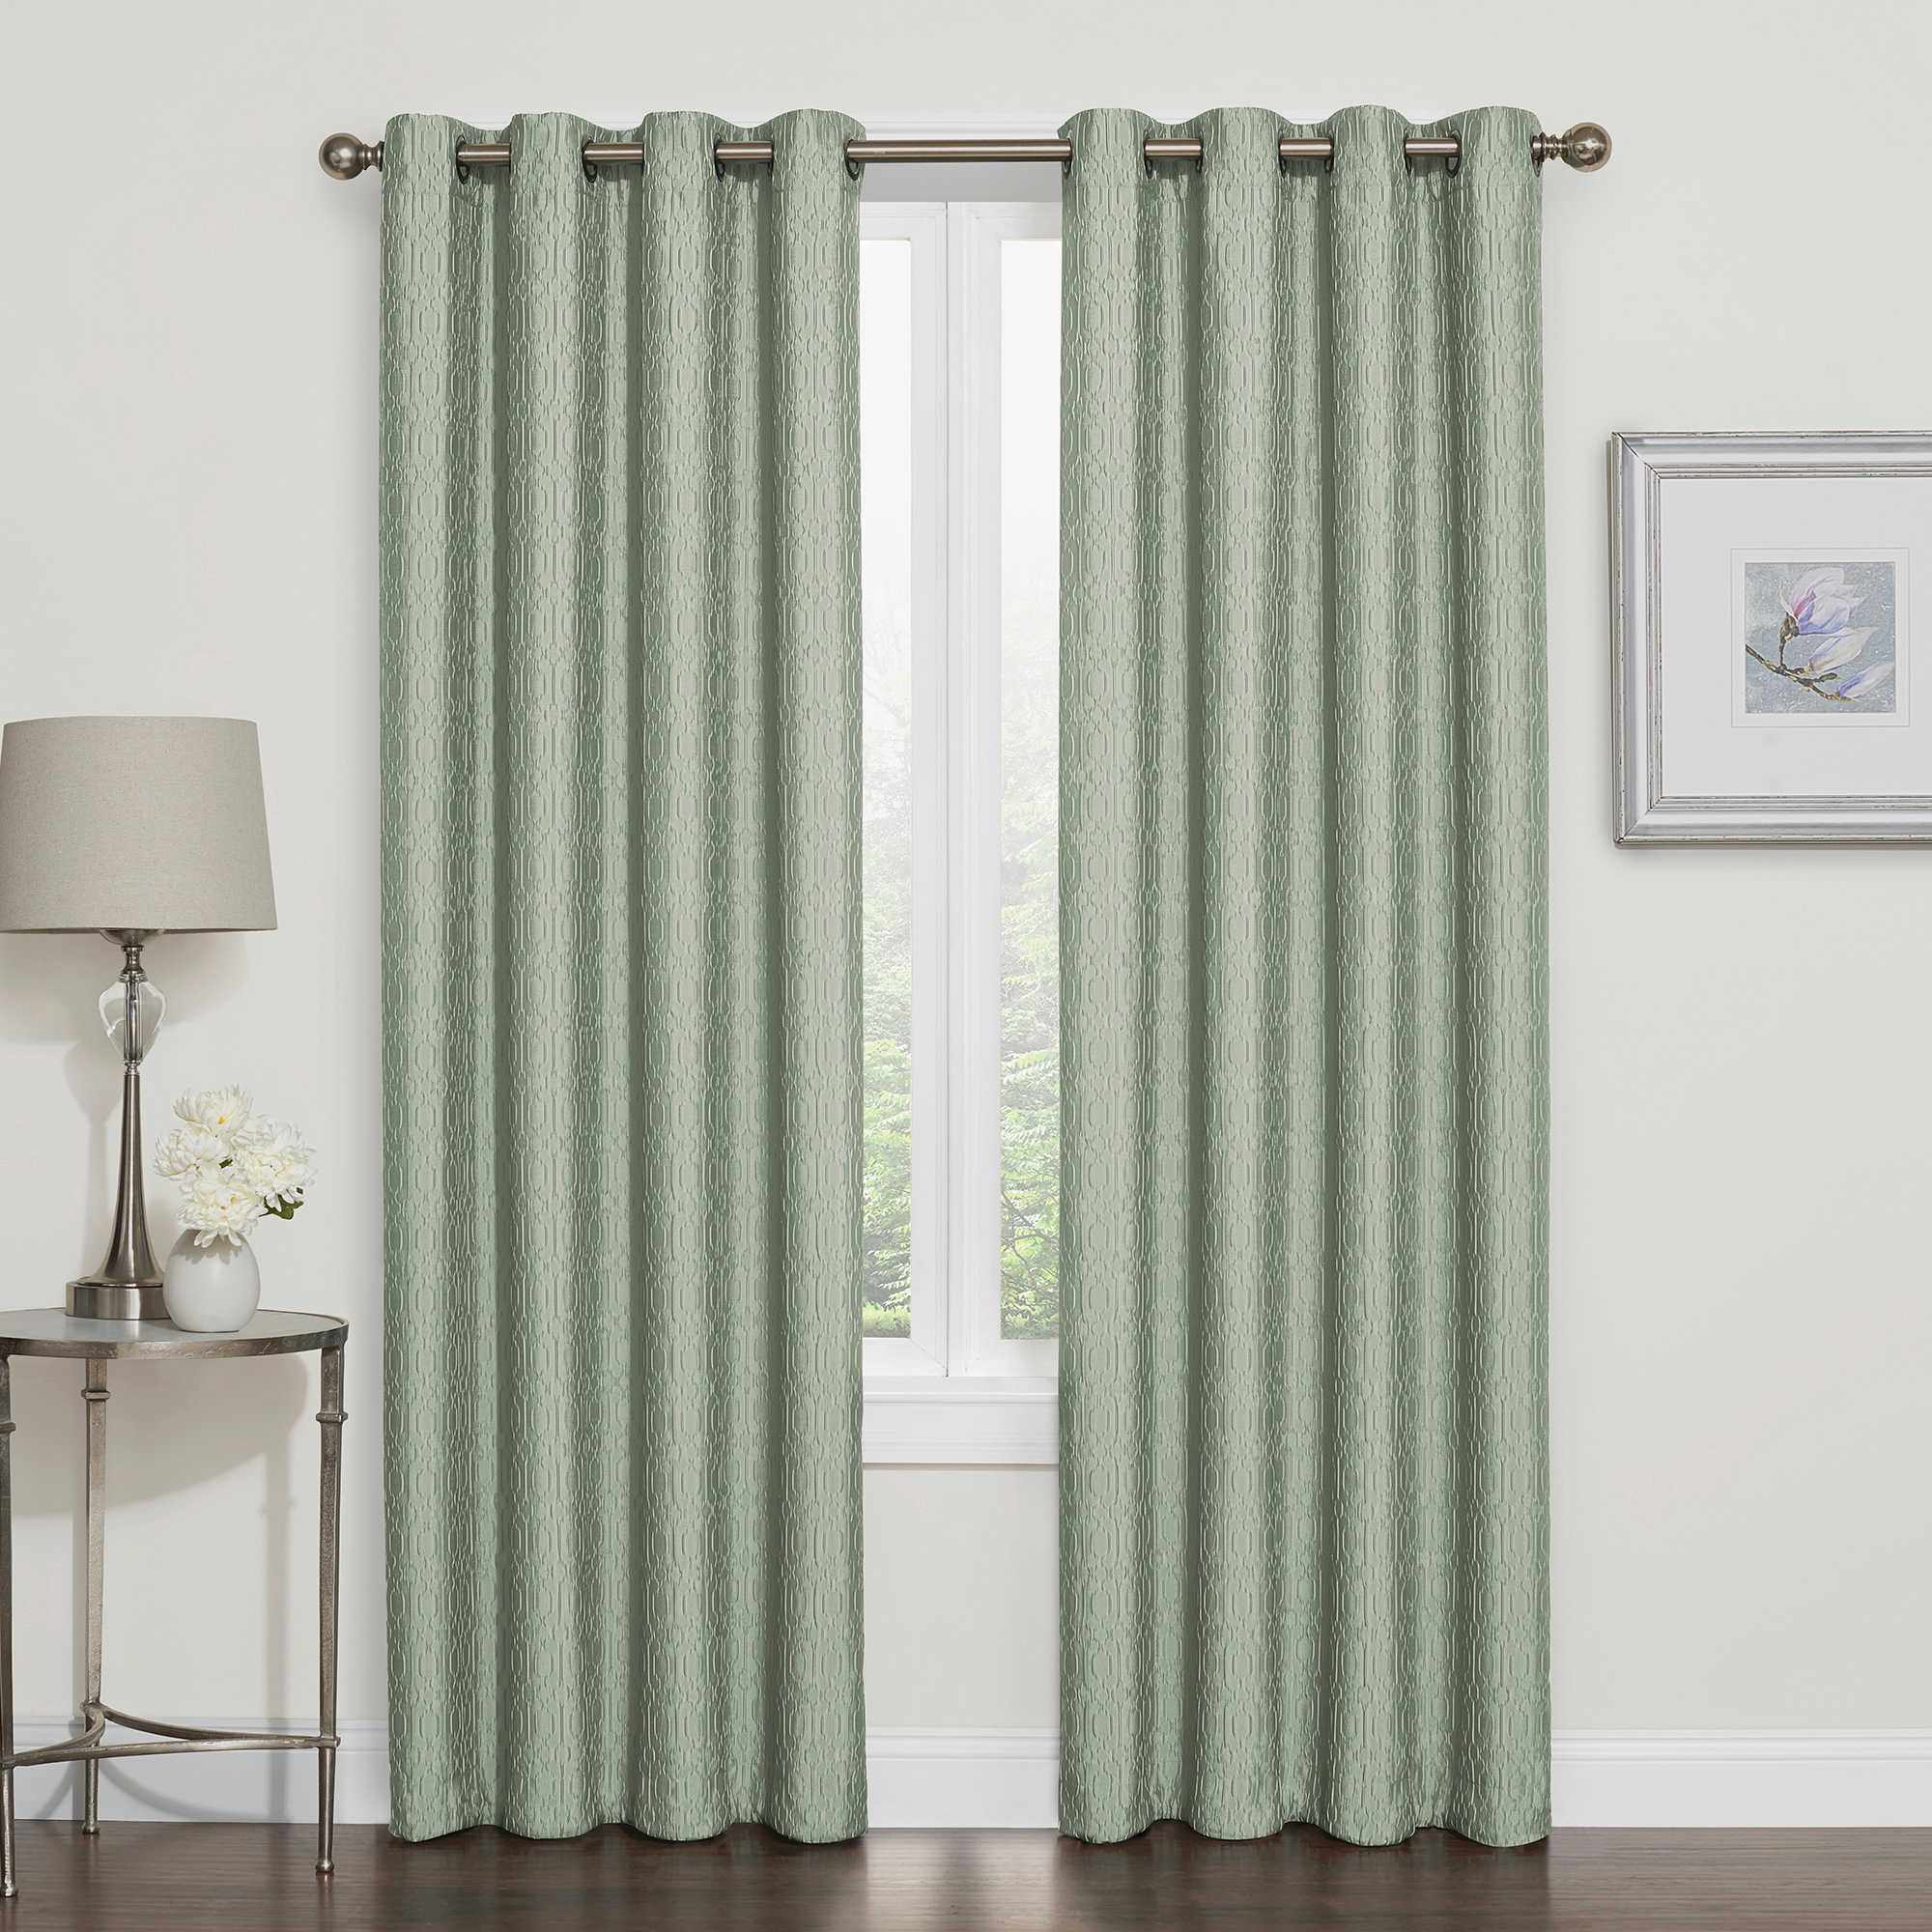 inexpensive beltran linen tie diy curtains drapes sunbrella top curtain rosa dupione tab design pearl xx customizing outdoor